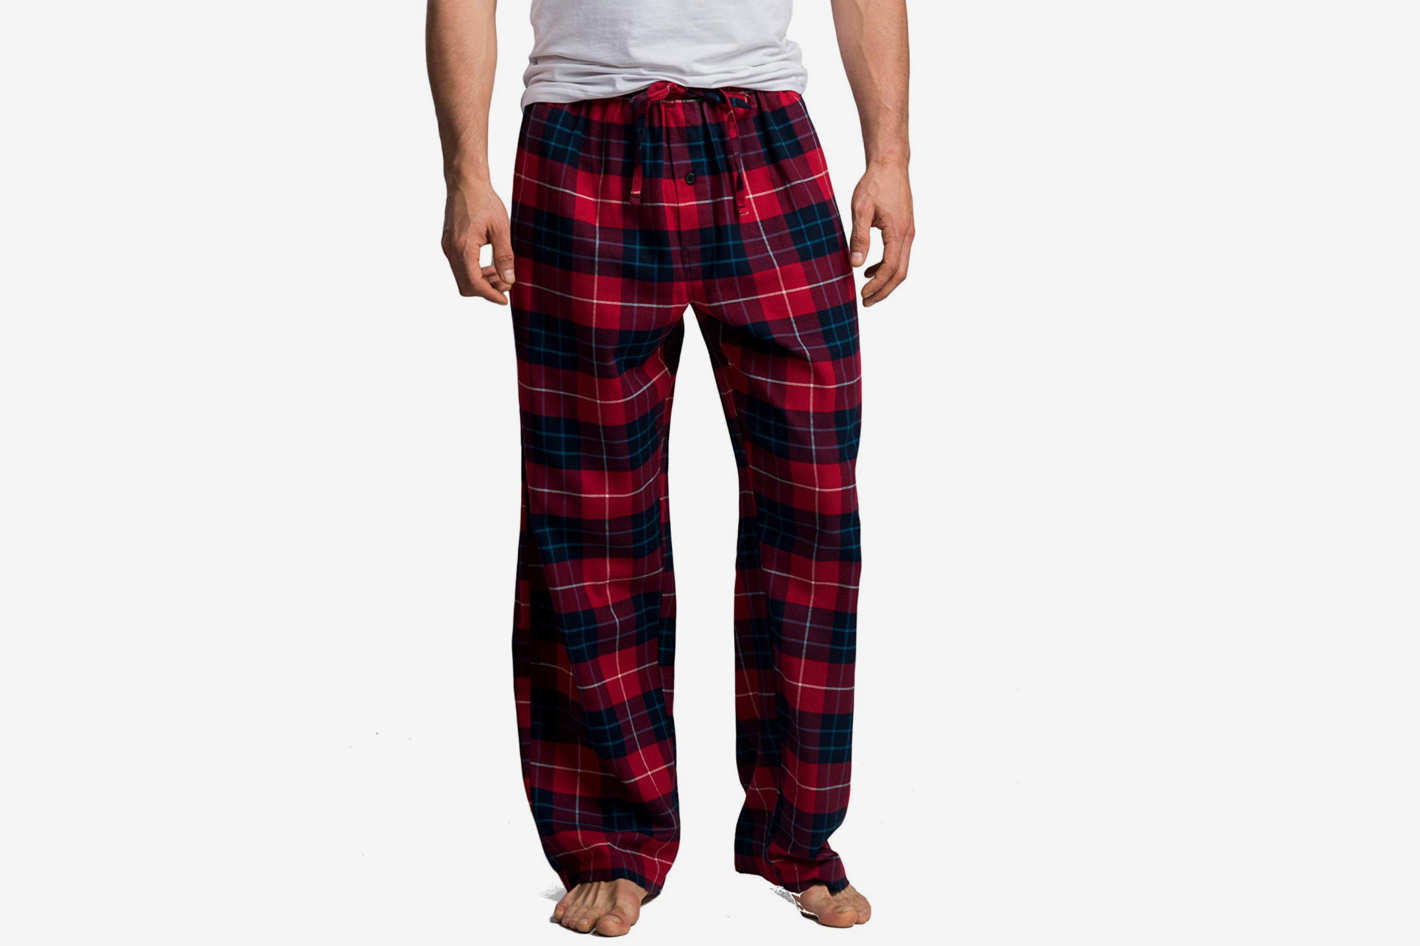 Best Christmas Pajamas for Men. CYZ Men s 100% Cotton Super Soft Flannel  Plaid Pajama Pants 6a78c97f5